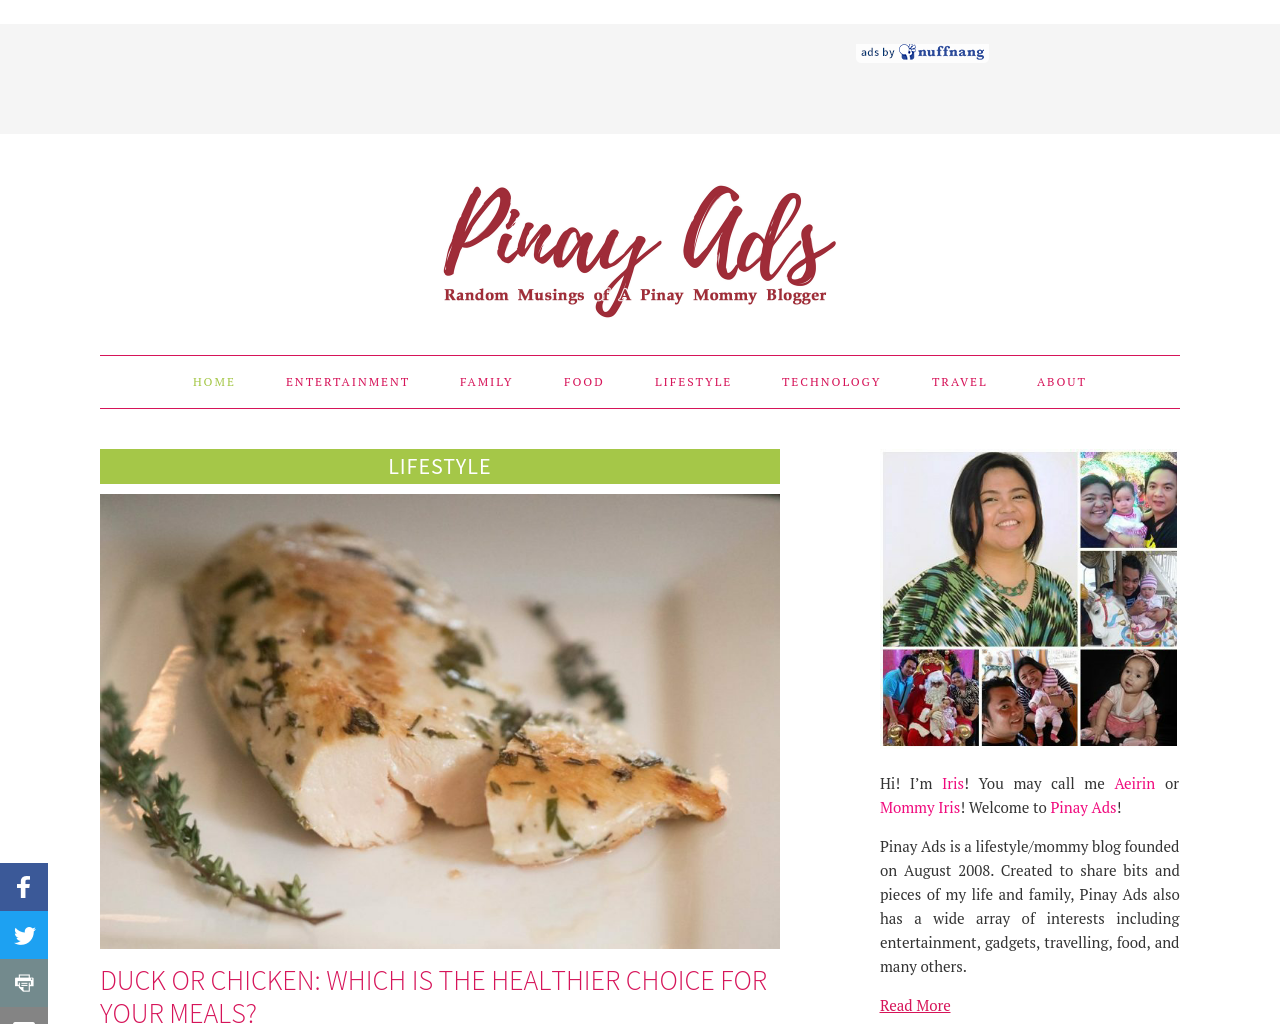 Pinay-Ads-Advertising-Reviews-Pricing